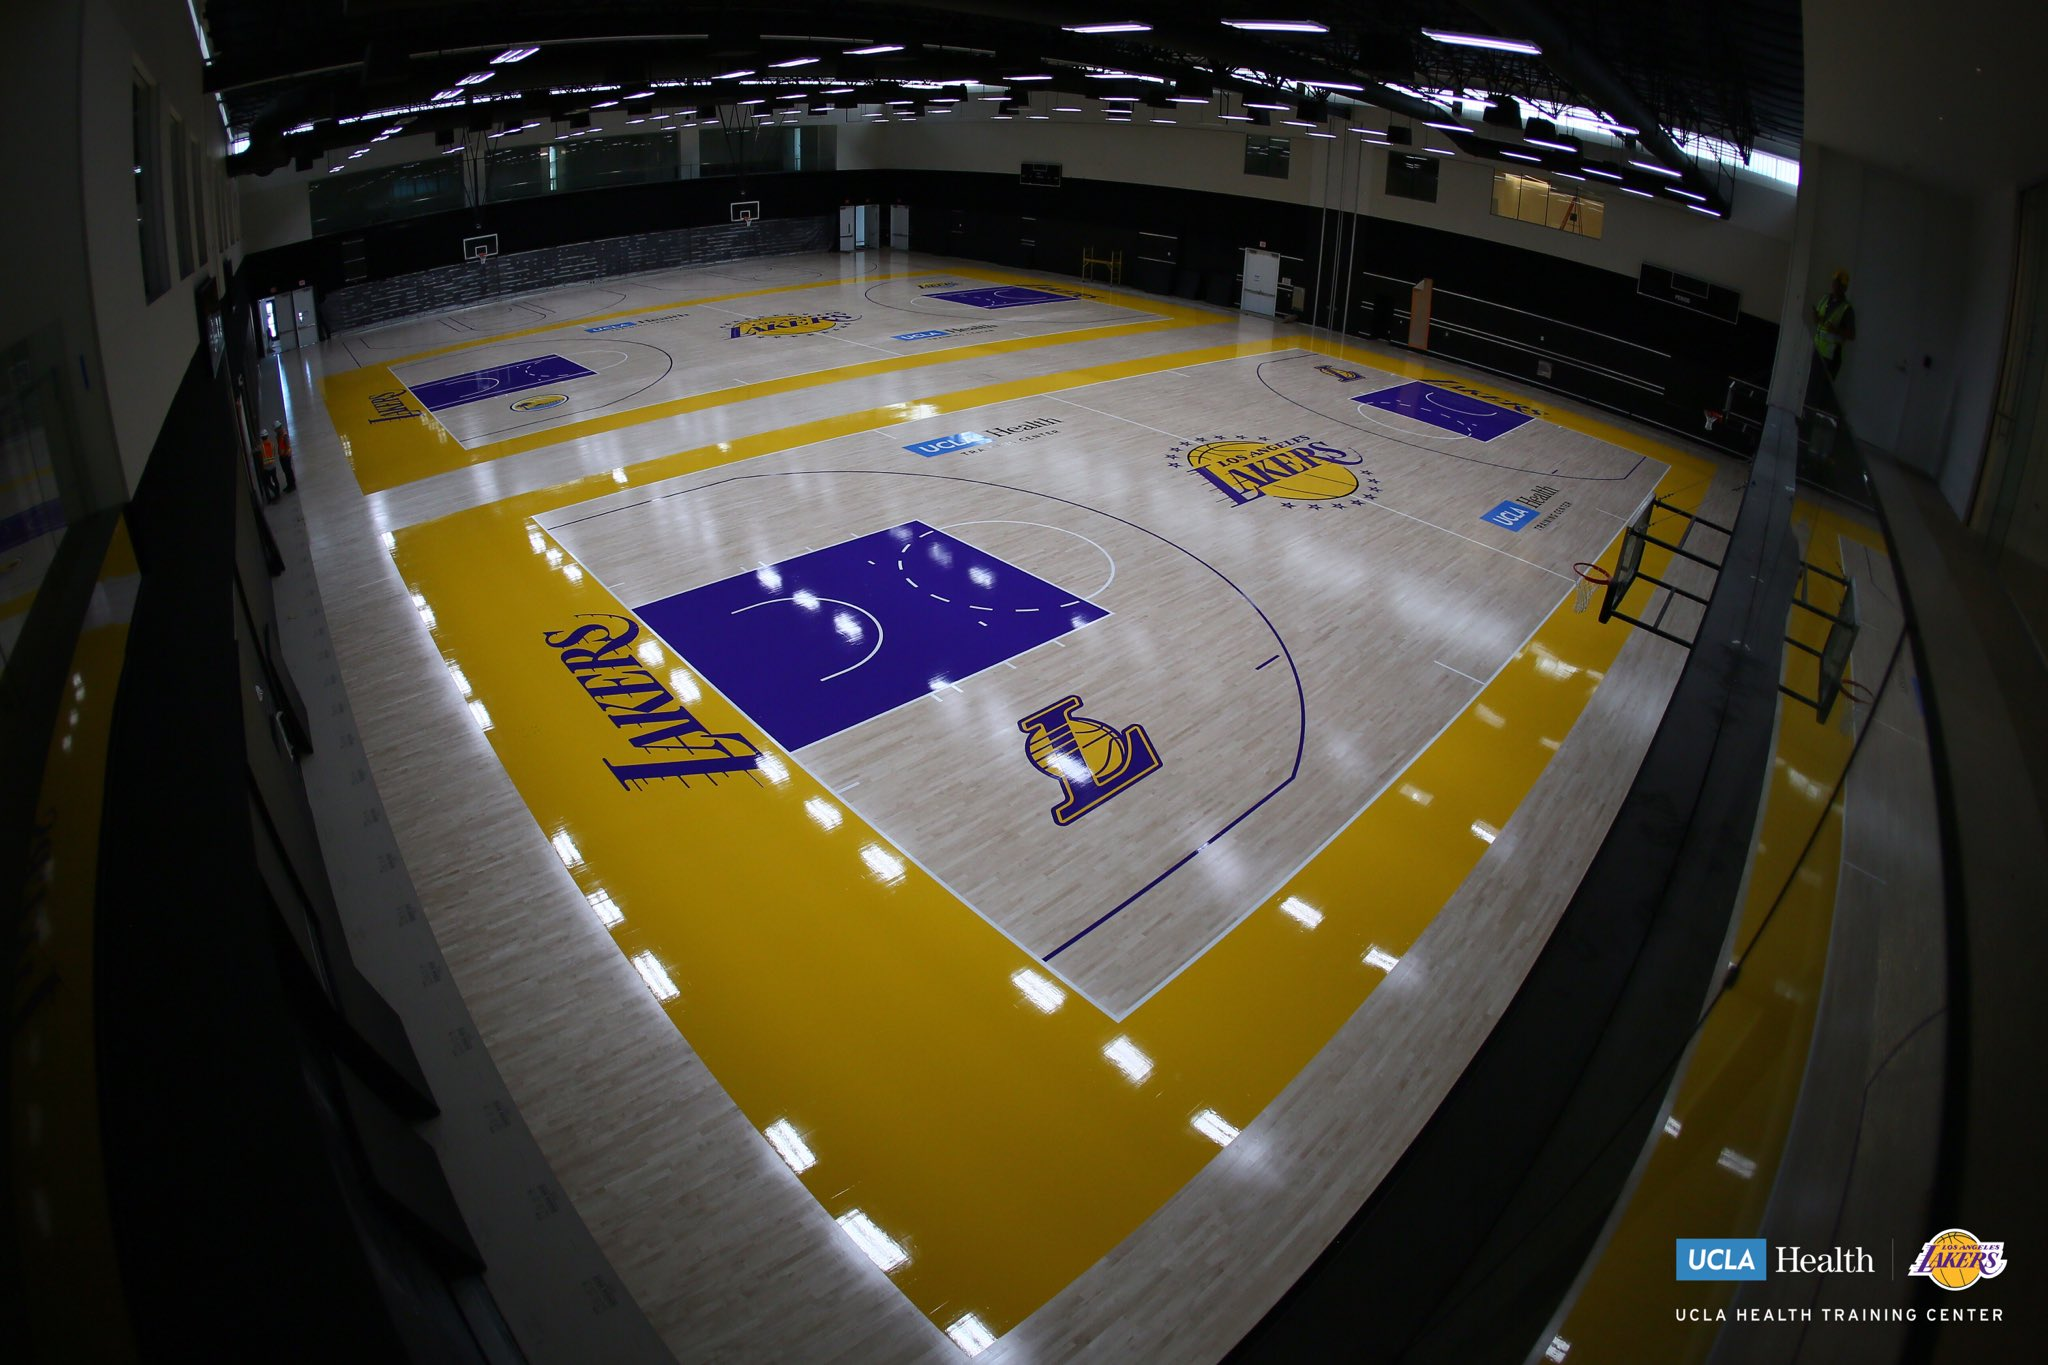 Not one, but two courts with the freshly painted purple and gold. #TeamUCLALakers https://t.co/VxTwERMsT6